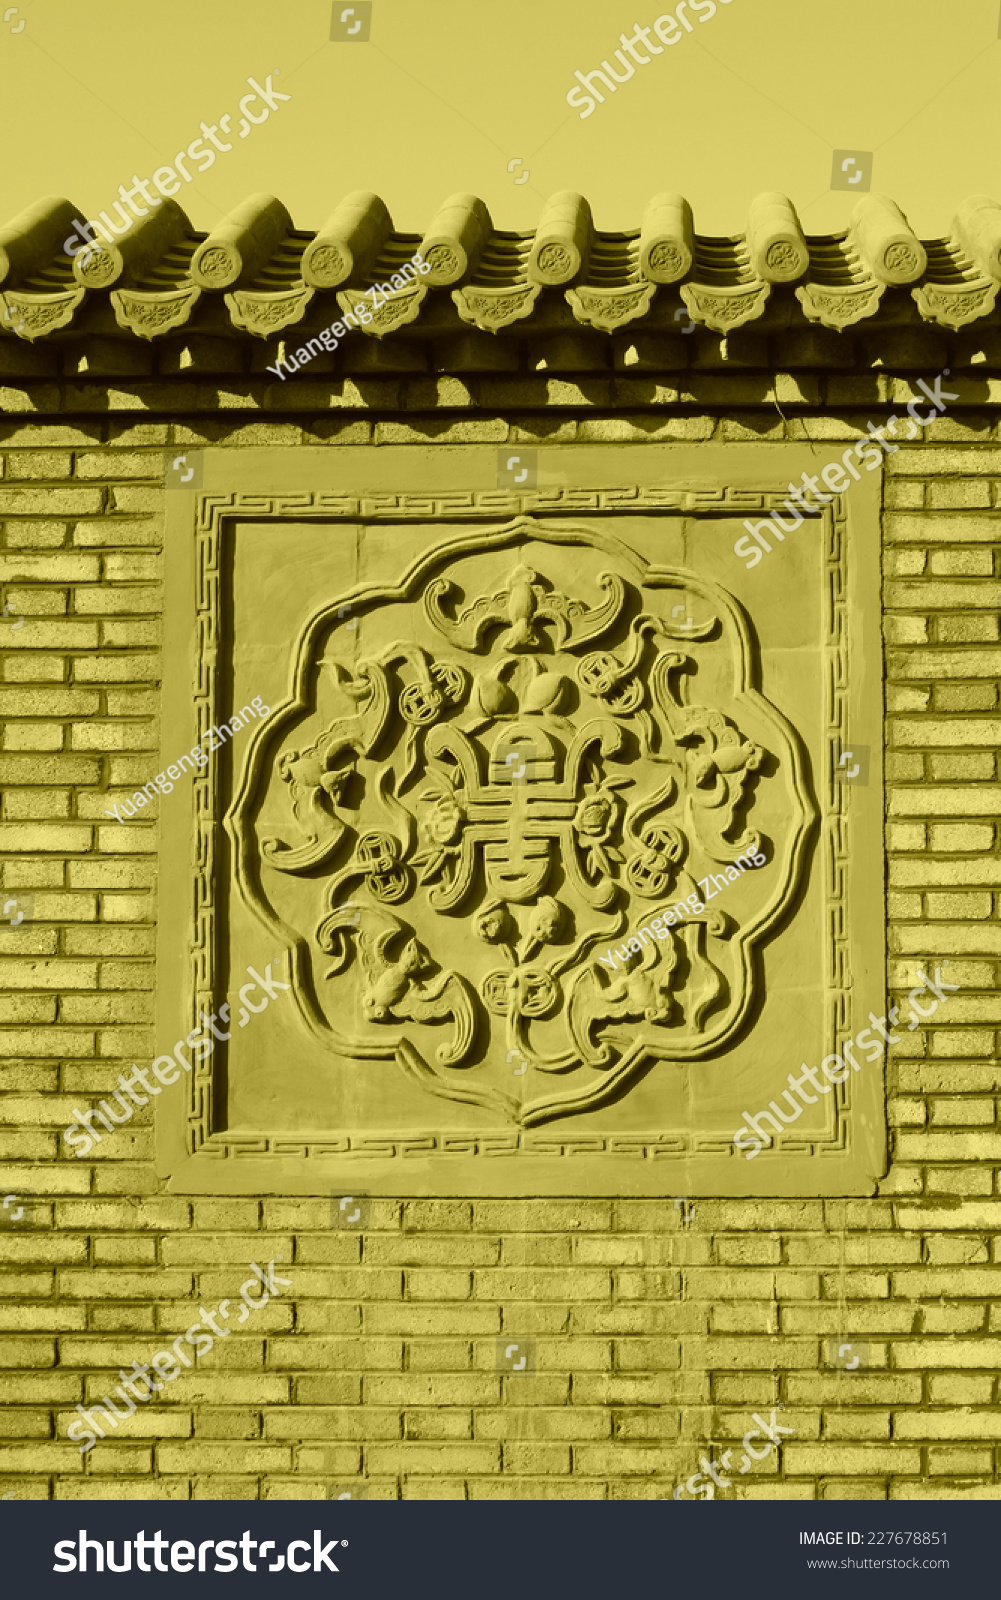 Carving Decoration On Wall Eastern Tombs Stock Photo (Royalty Free ...